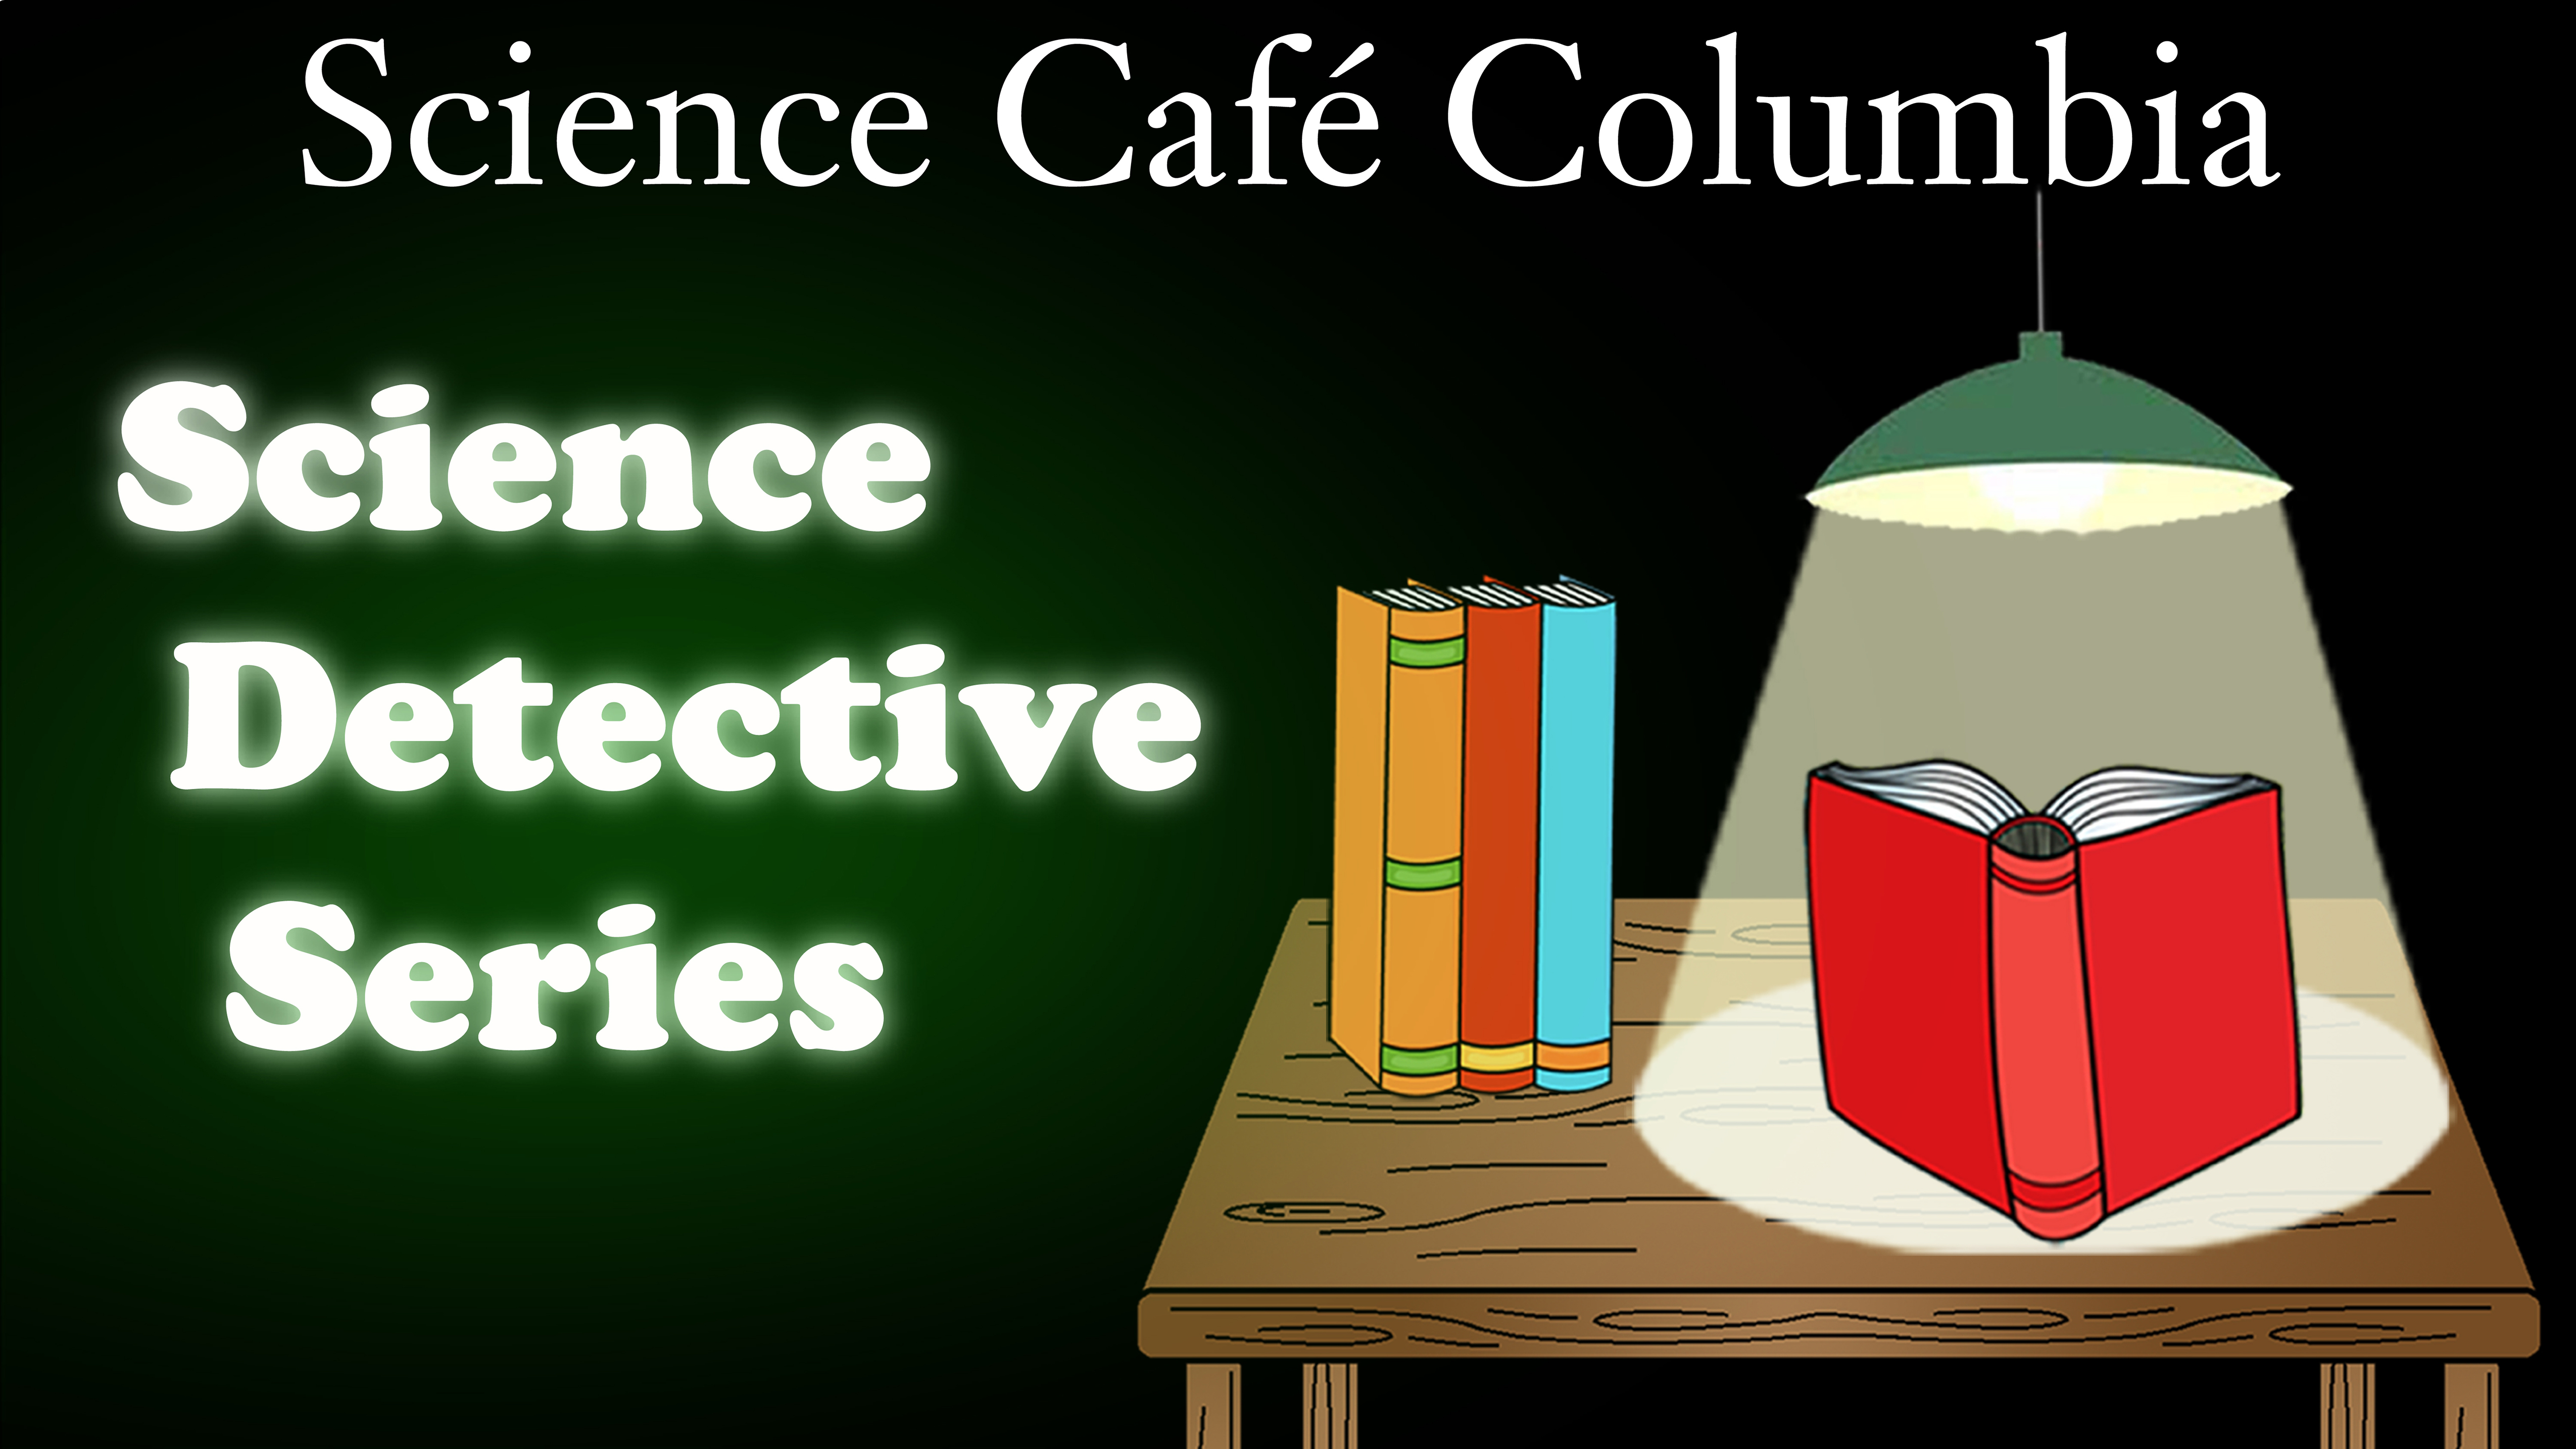 Science Cafe Detective Series